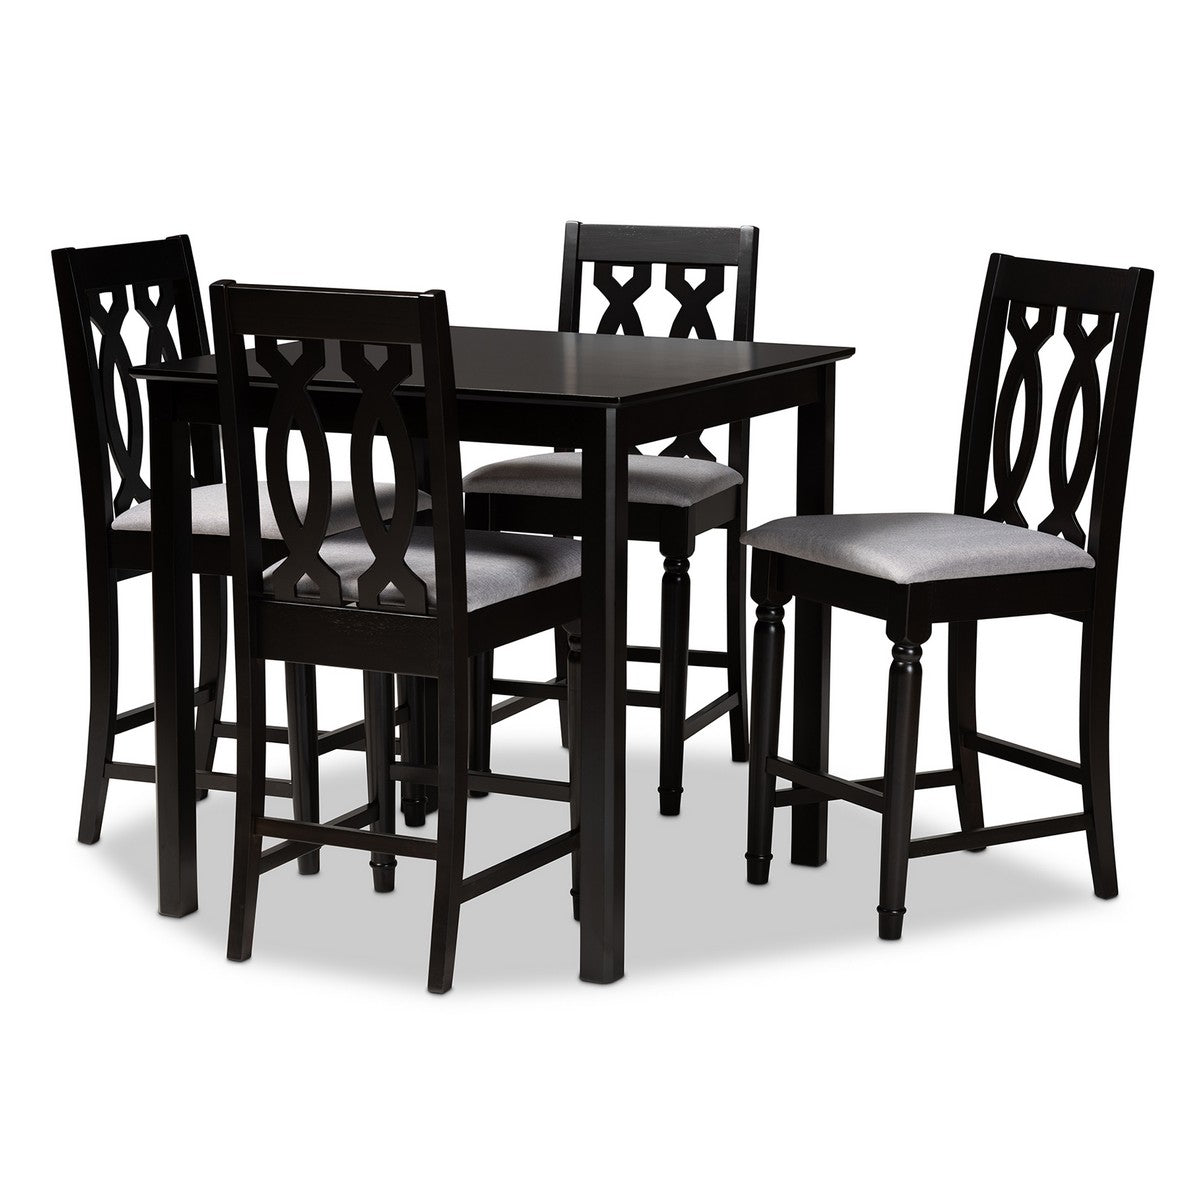 Baxton Studio Darcie Modern and Contemporary Grey Fabric Upholstered Espresso Brown Finished 5-Piece Wood Pub Set Baxton Studio-Pub Sets-Minimal And Modern - 1